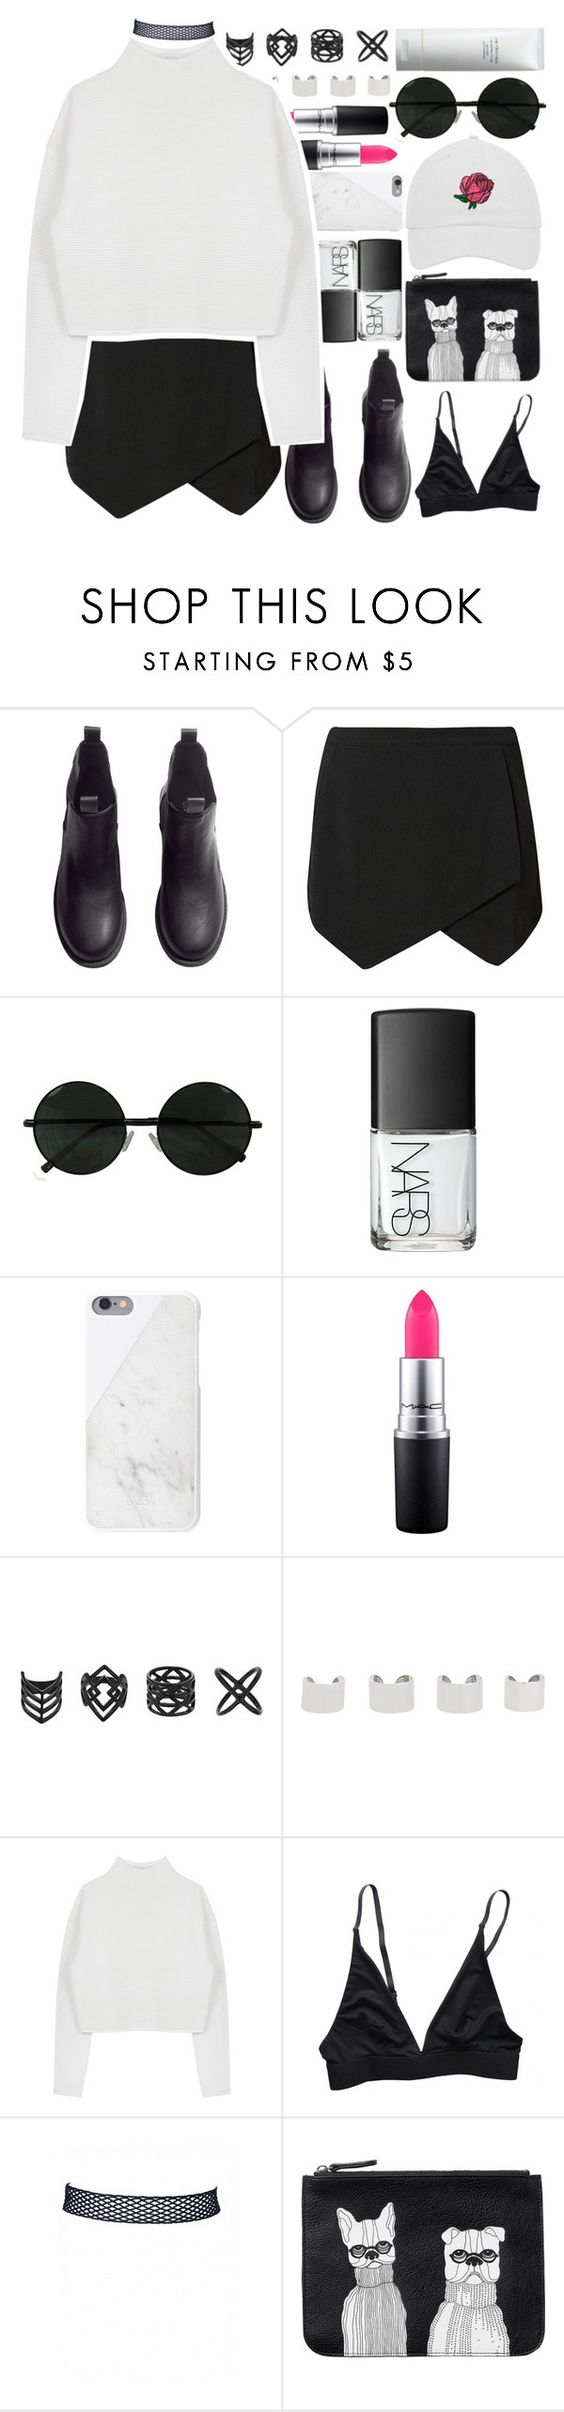 """""""i hate u i love u i hate that i love u"""" by abby-aqua ❤ liked on Polyvore featuring H&M, NARS Cosmetics, Native Union, MAC Cosmetics, Topshop, Maison Margiela, Dion Lee, Monki and Shiseido"""